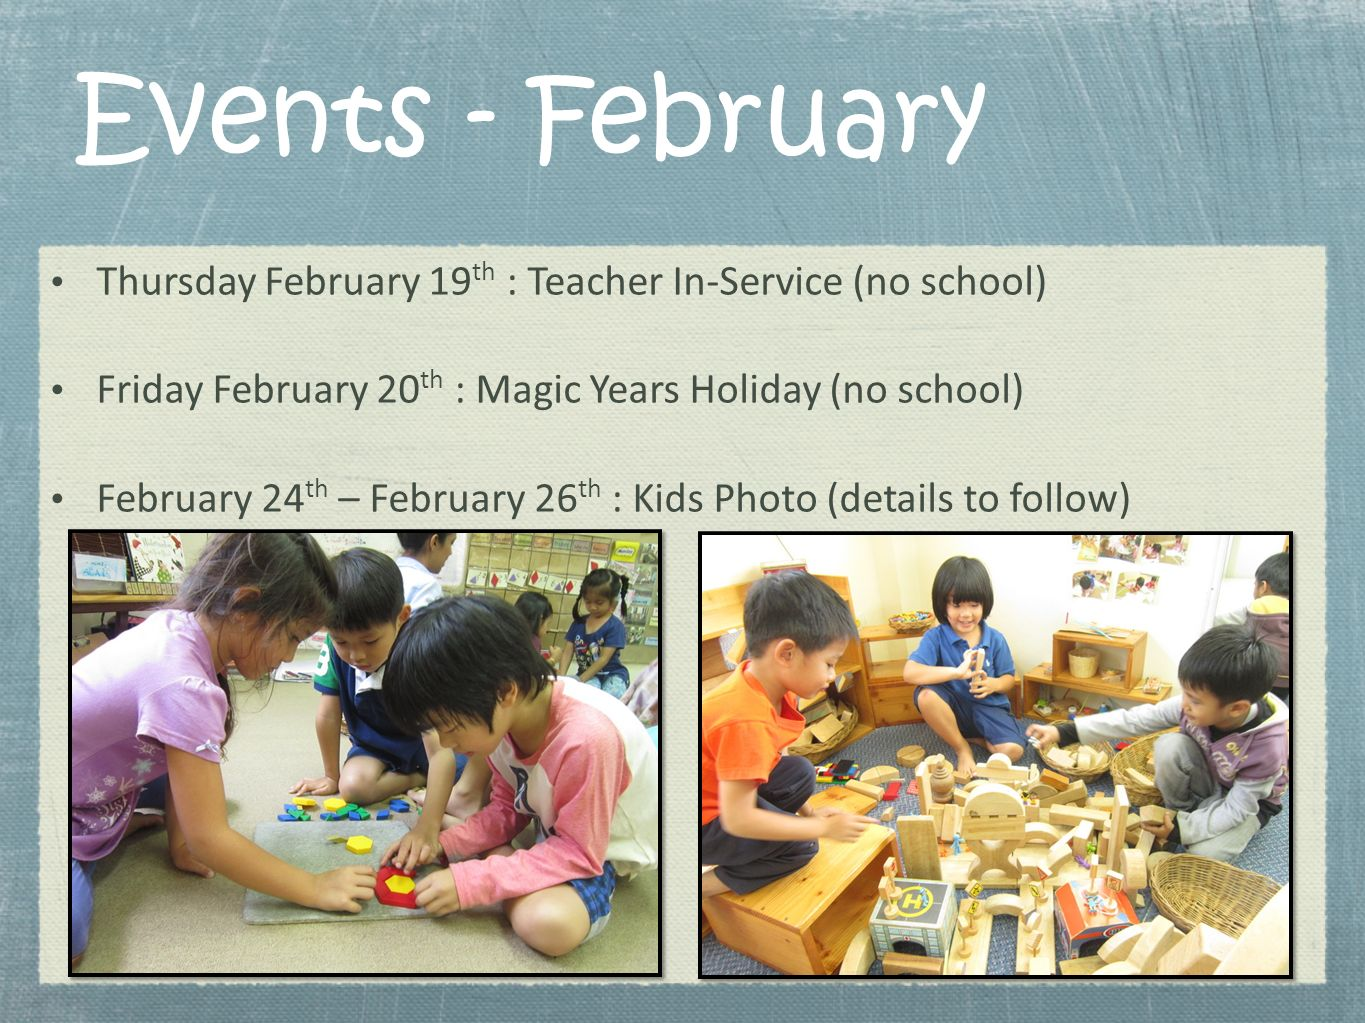 Events - February Thursday February 19th : Teacher In-Service (no school) Friday February 20th : Magic Years Holiday (no school)